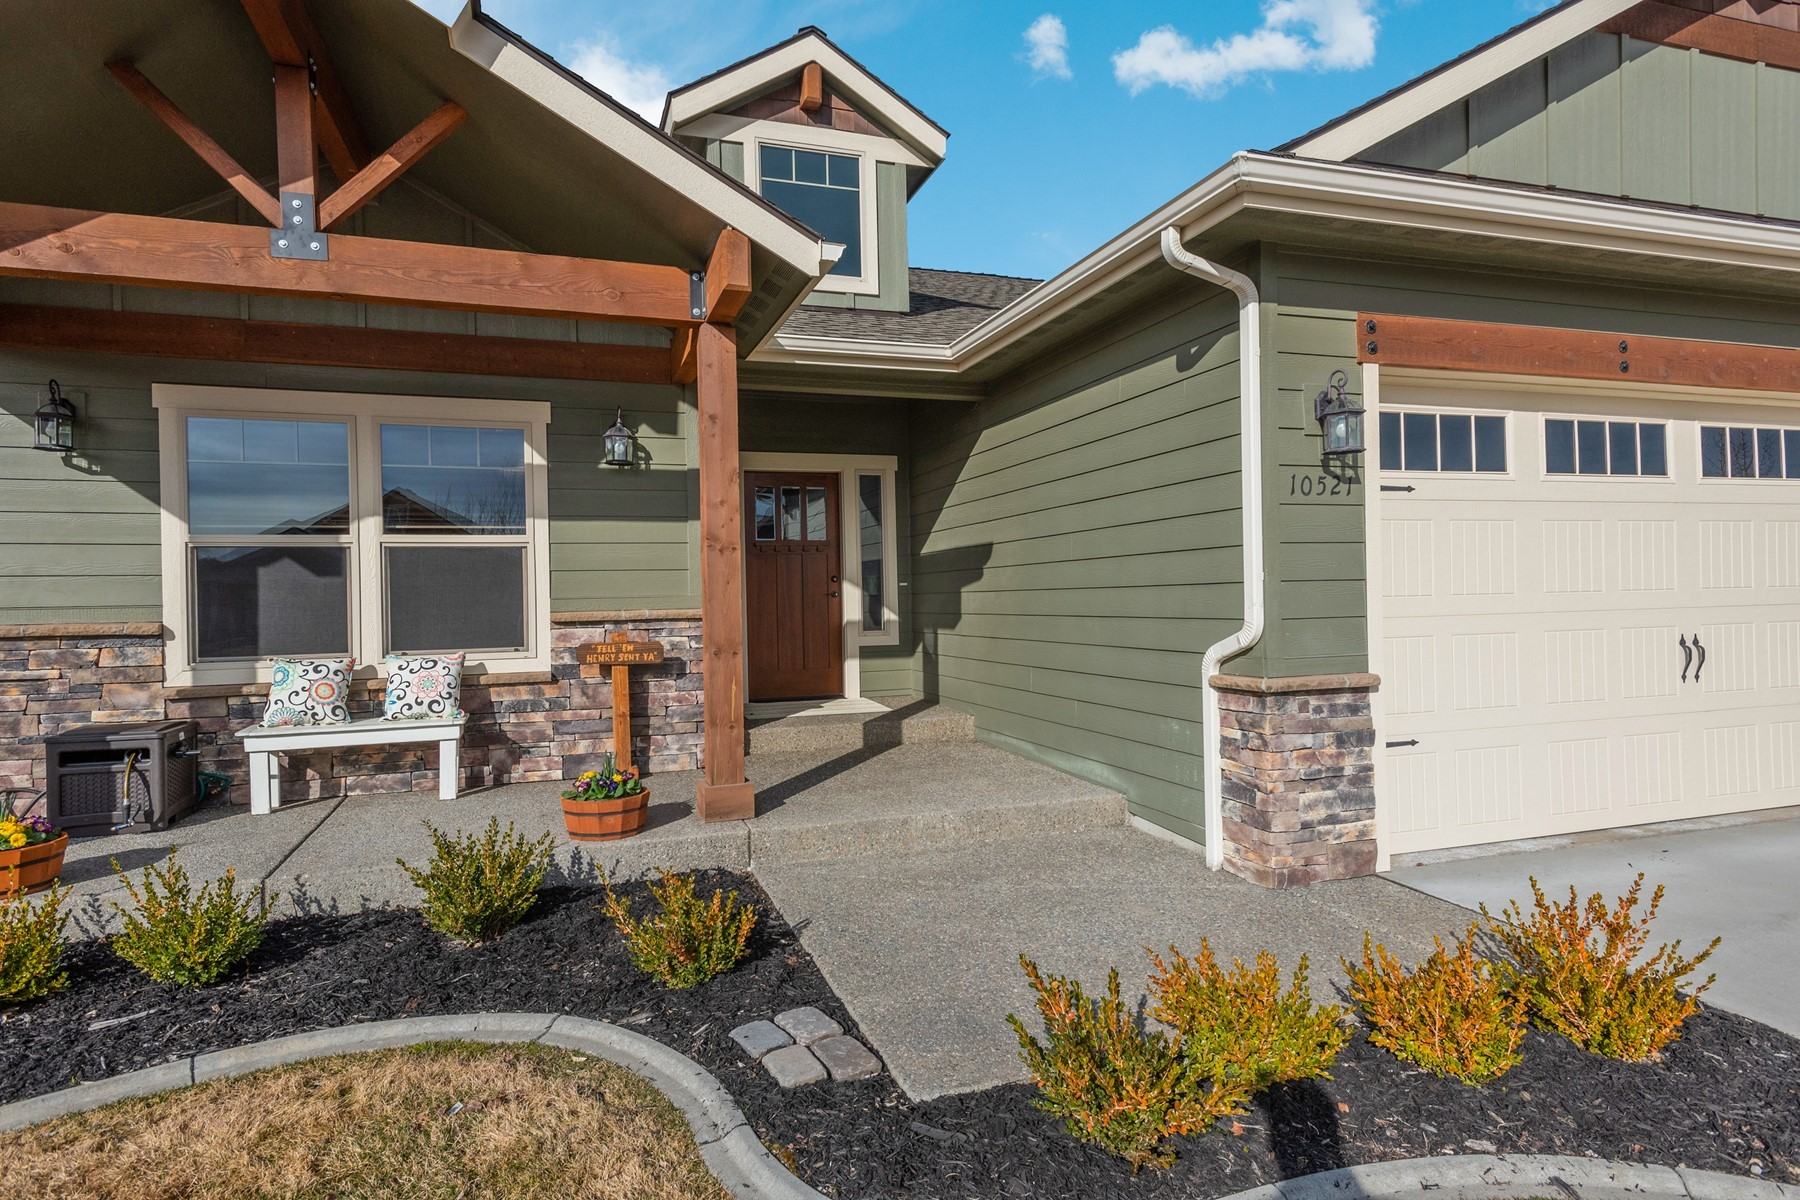 Single Family Homes for Active at 10521 N Barcelona St. Hayden, Idaho 83835 United States